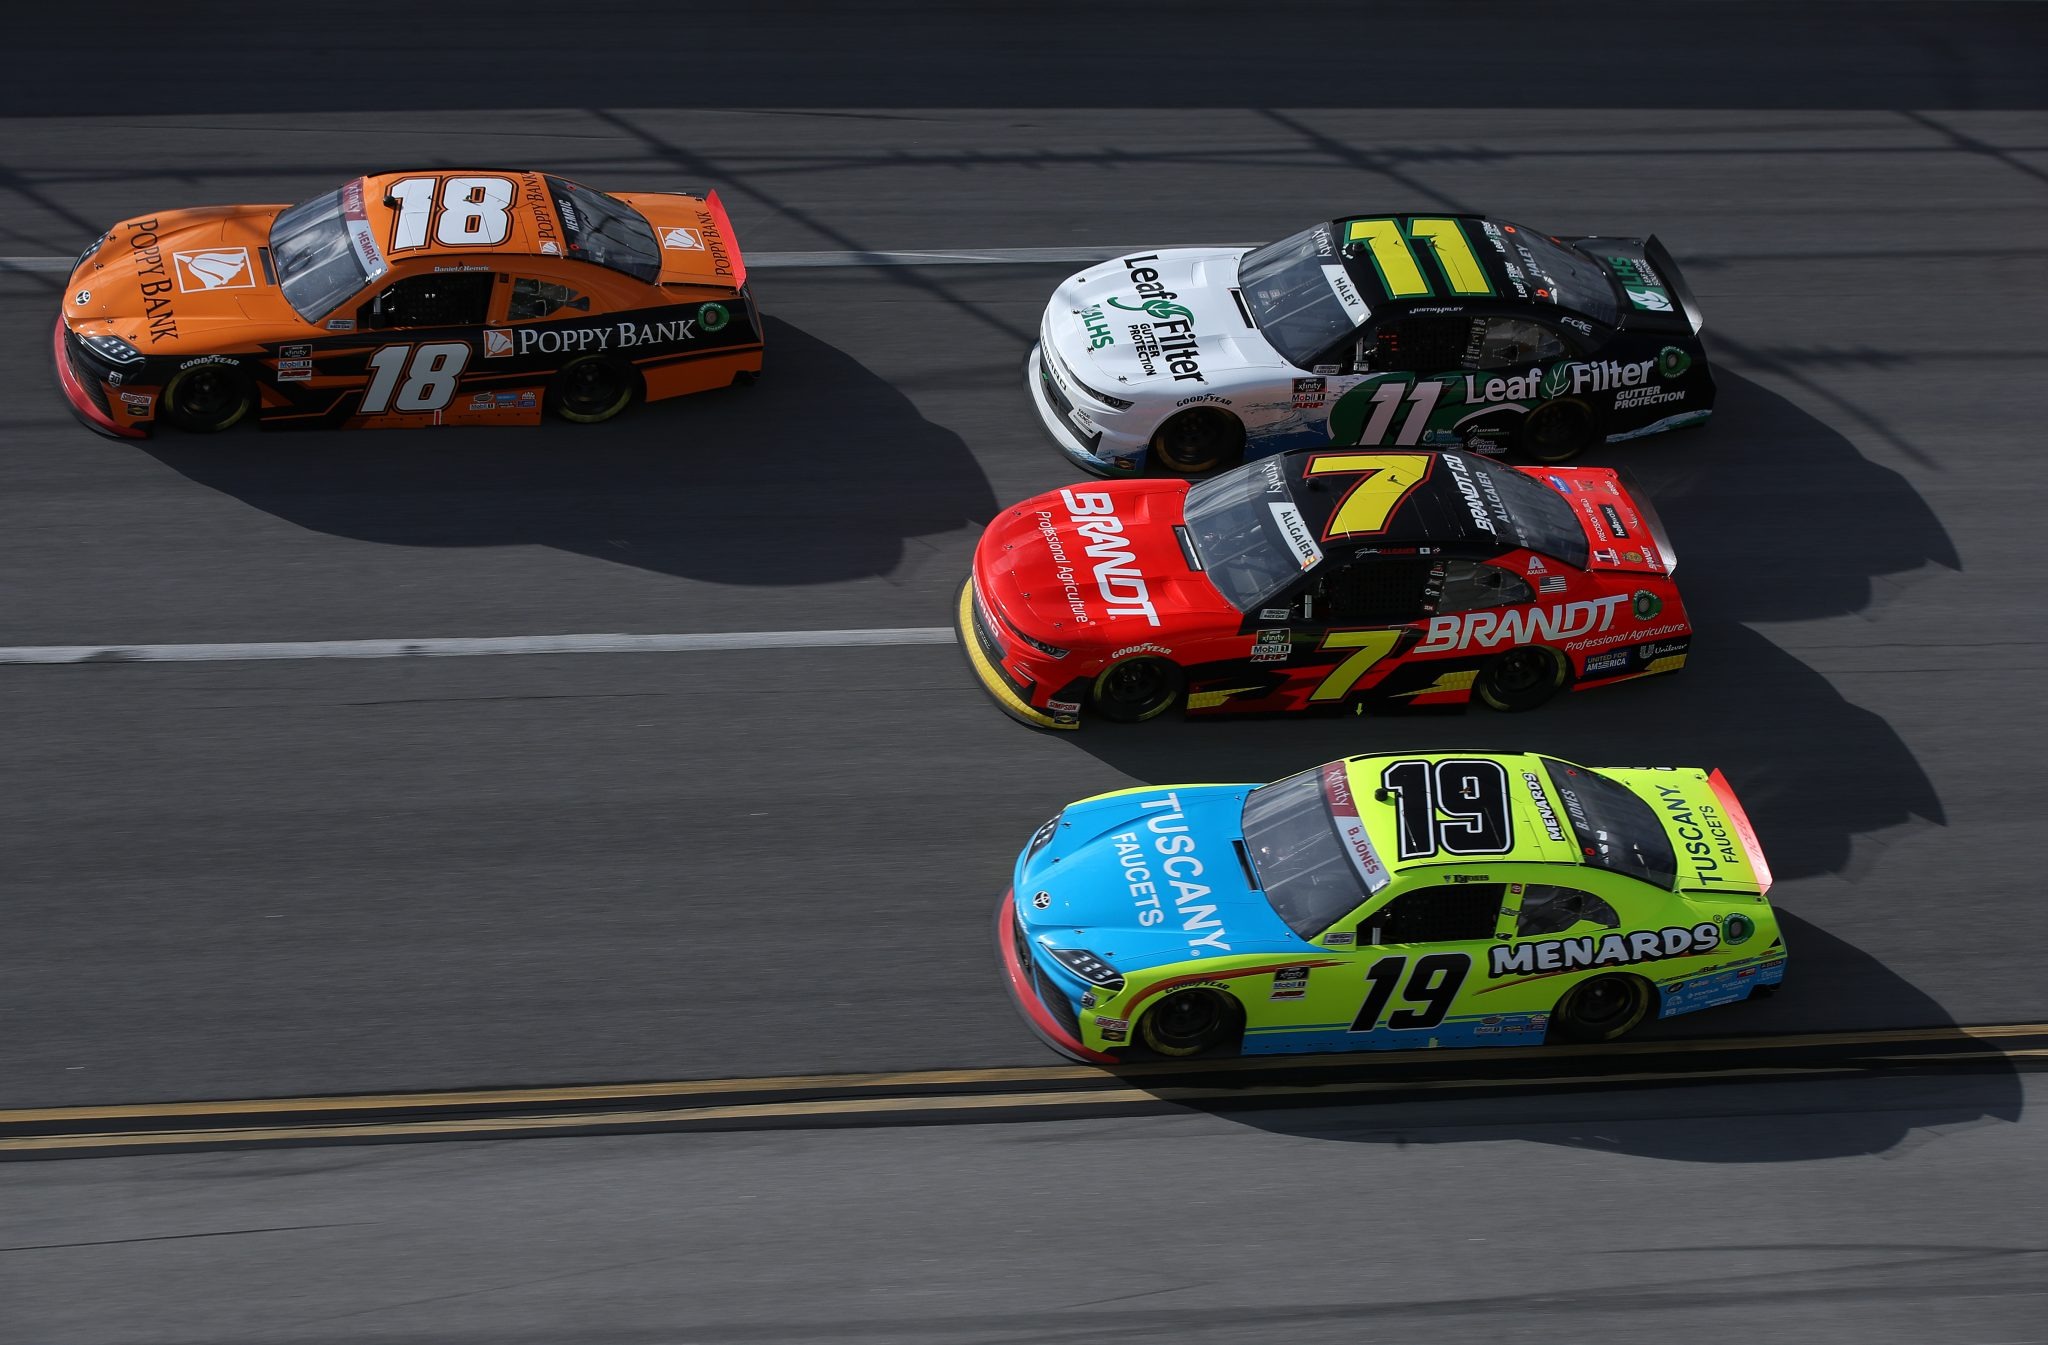 TALLADEGA, ALABAMA - APRIL 24: Daniel Hemric, driver of the #18 Poppy Bank Toyota, Brandon Jones, driver of the #19 Menards/Tuscany Faucets Toyota, Justin Allgaier, driver of the #7 BRANDT Chevrolet, and Justin Haley, driver of the #11 LeafFilter Gutter Protection Chevrolet, race during the NASCAR Xfinity Series Ag-Pro 300 at Talladega Superspeedway on April 24, 2021 in Talladega, Alabama. (Photo by Sean Gardner/Getty Images)   Getty Images